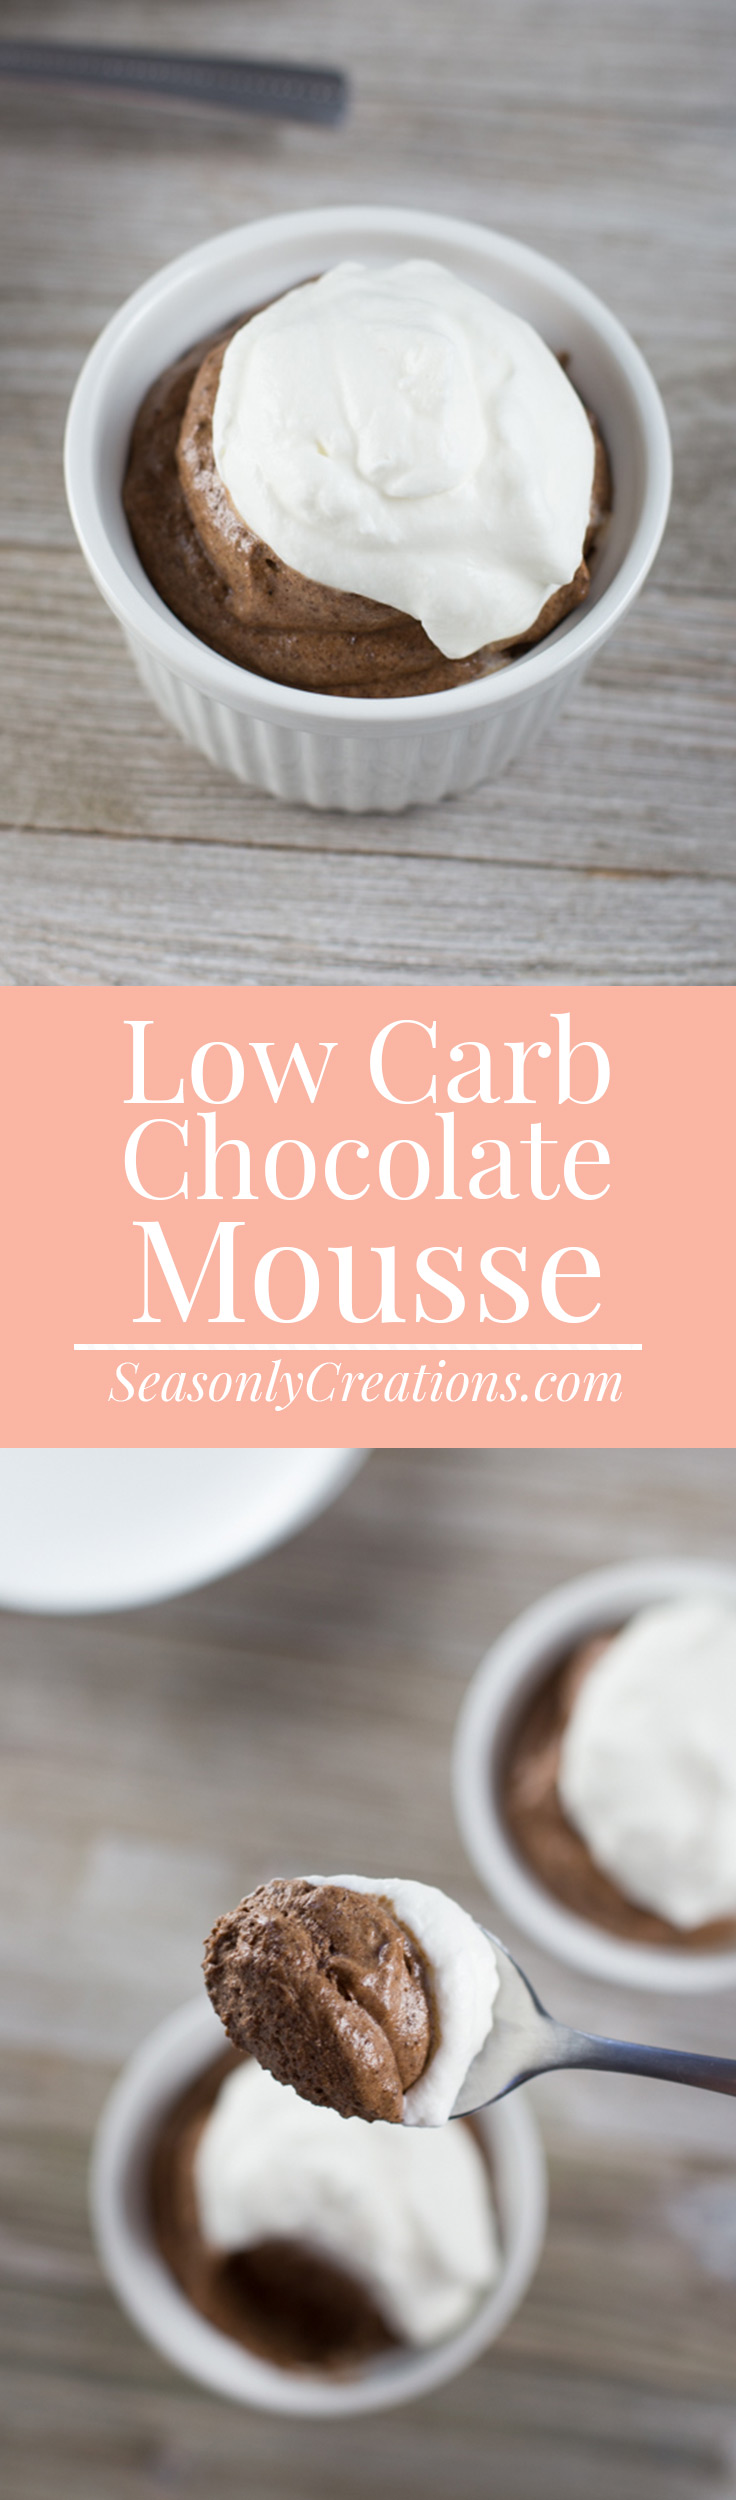 Low Carb Chocolate Mousse is the perfect keto-friendly summer dessert recipe for chocolate lovers. This no-bake low carb dessert is ideal for low sugar dieters who resist turning the oven on during this hot season!